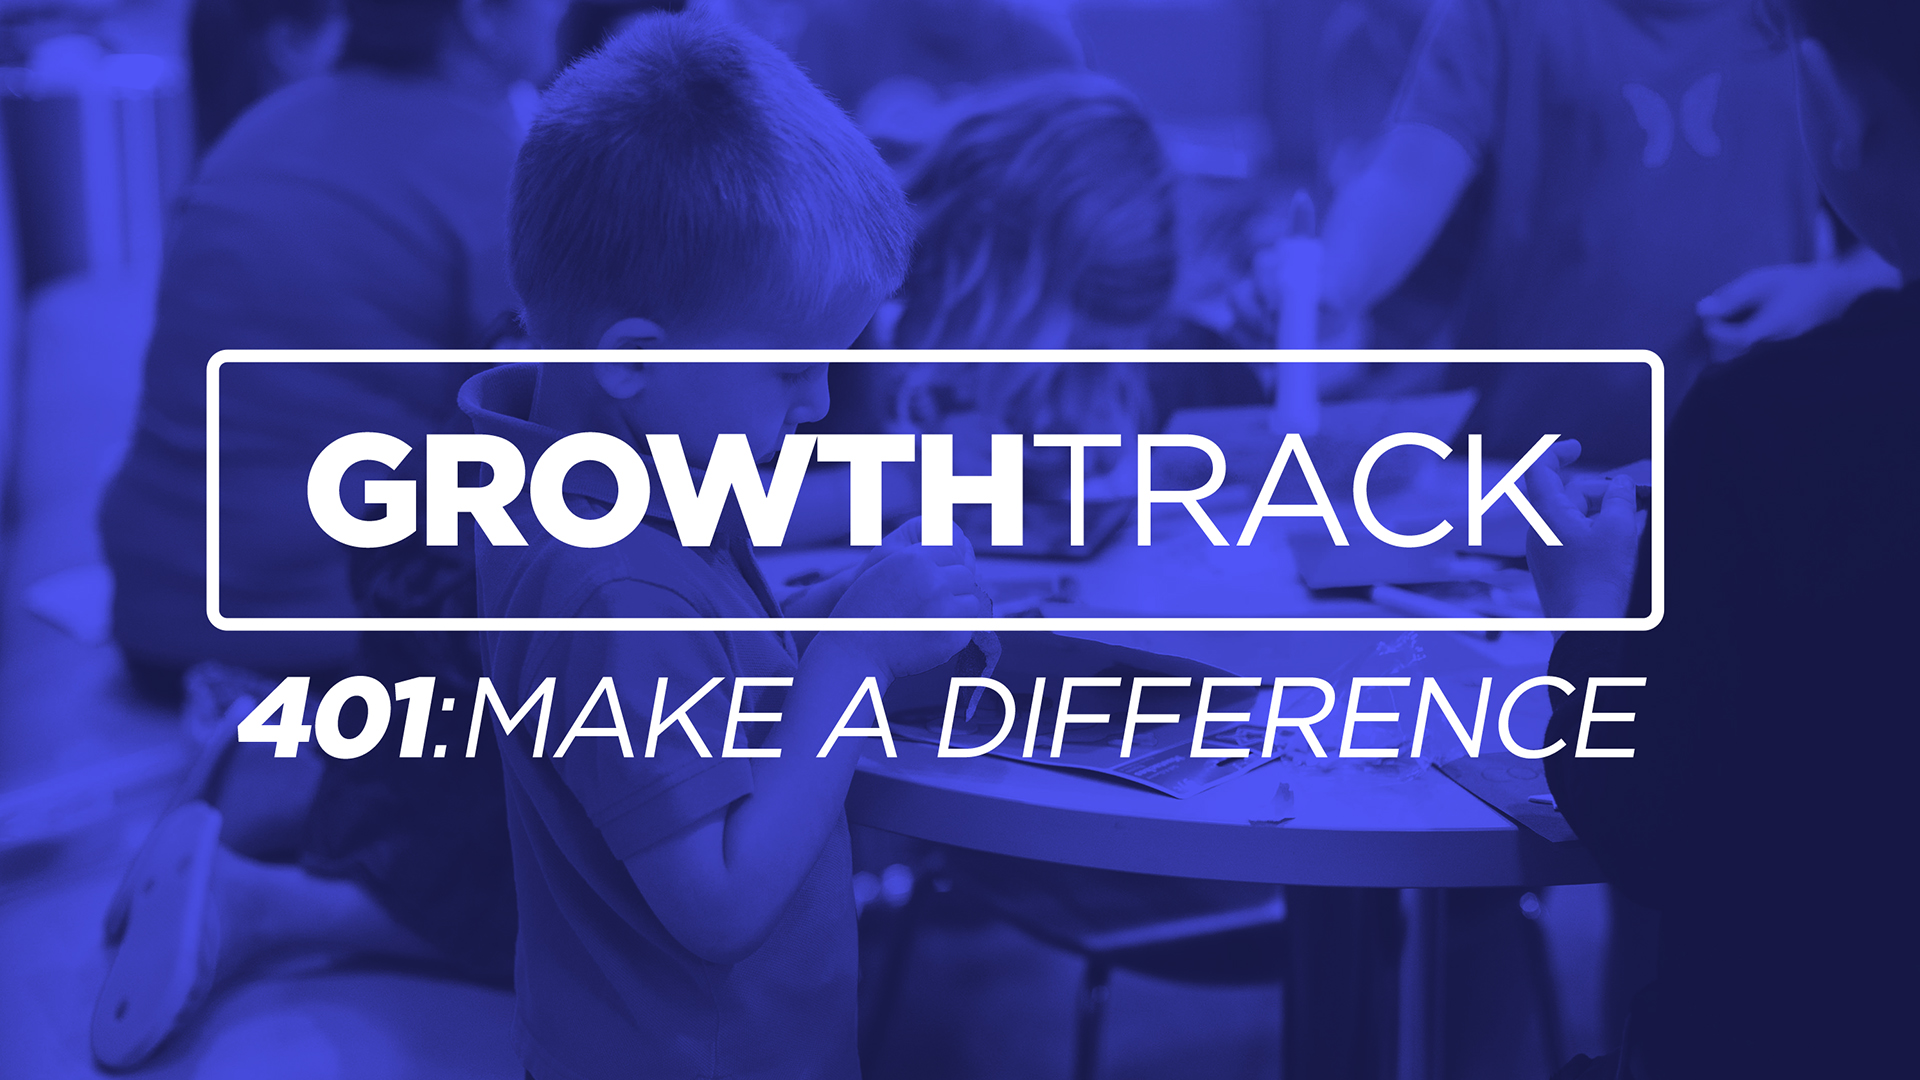 Step FOUR - Make a Difference - Step Four of Growth Track positions you to live out your purpose and make a difference through the church.Next Step: Serve God by Serving People